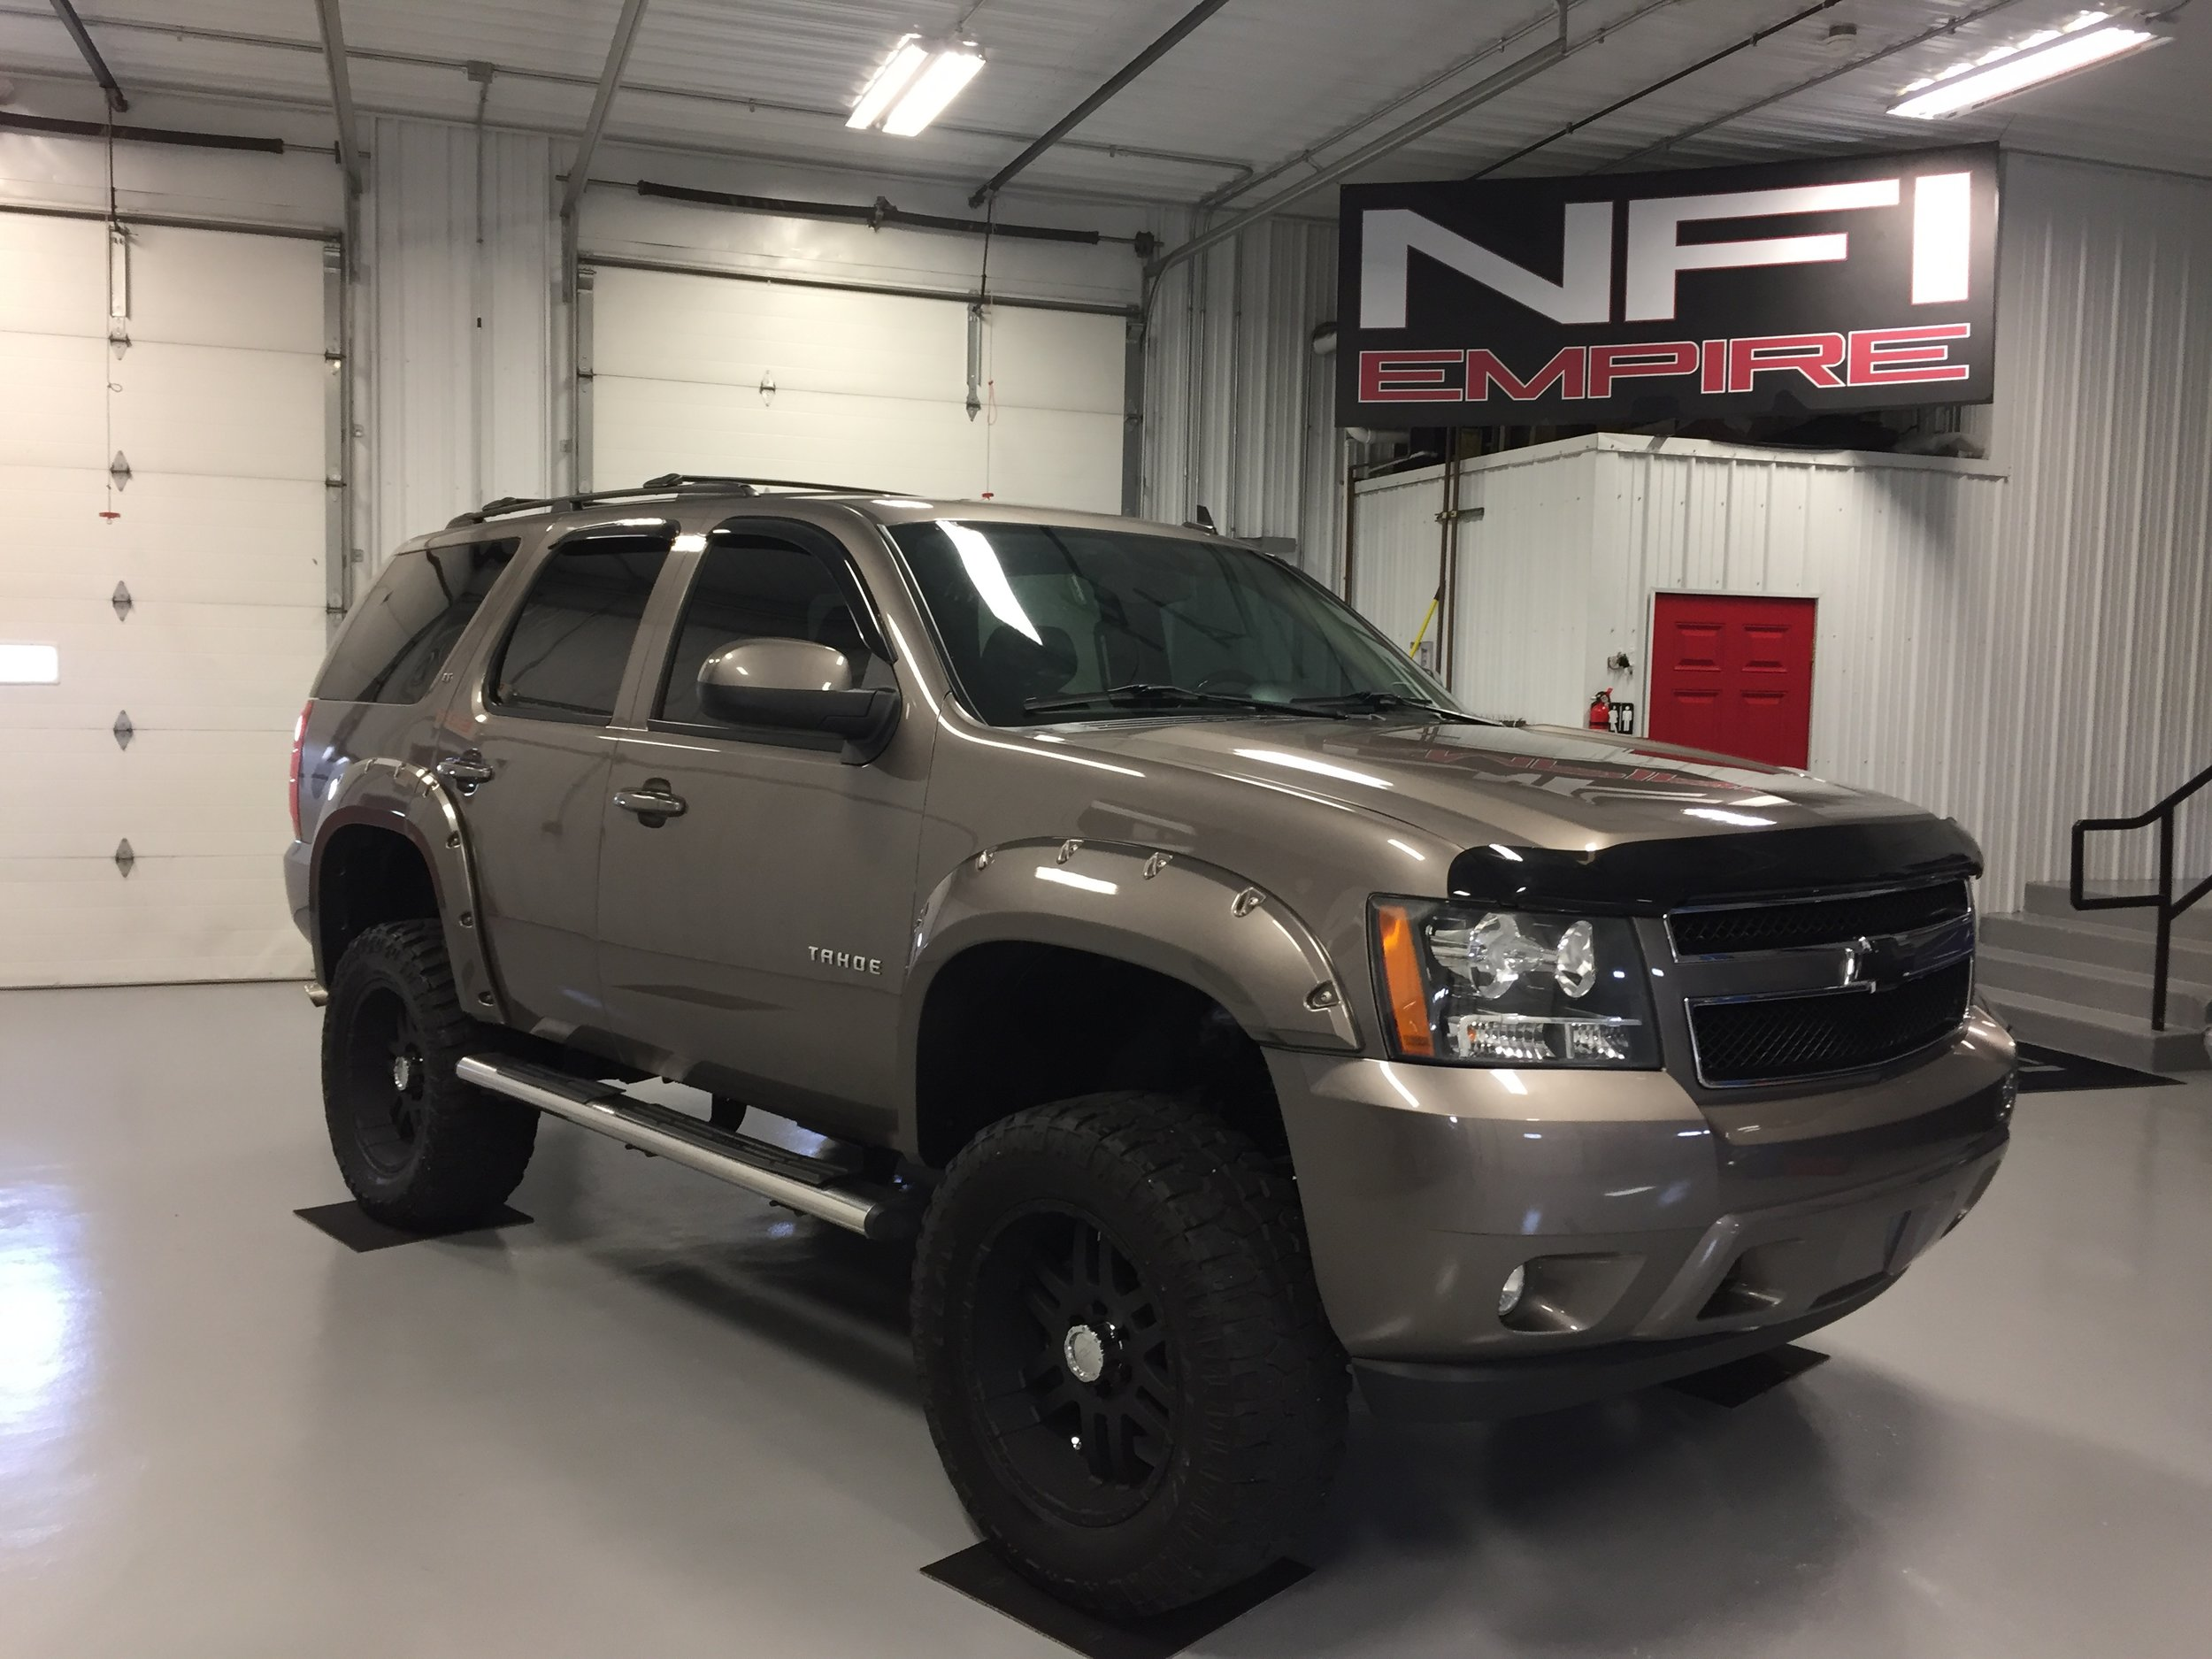 Lifted Tahoe - Lifted SUV